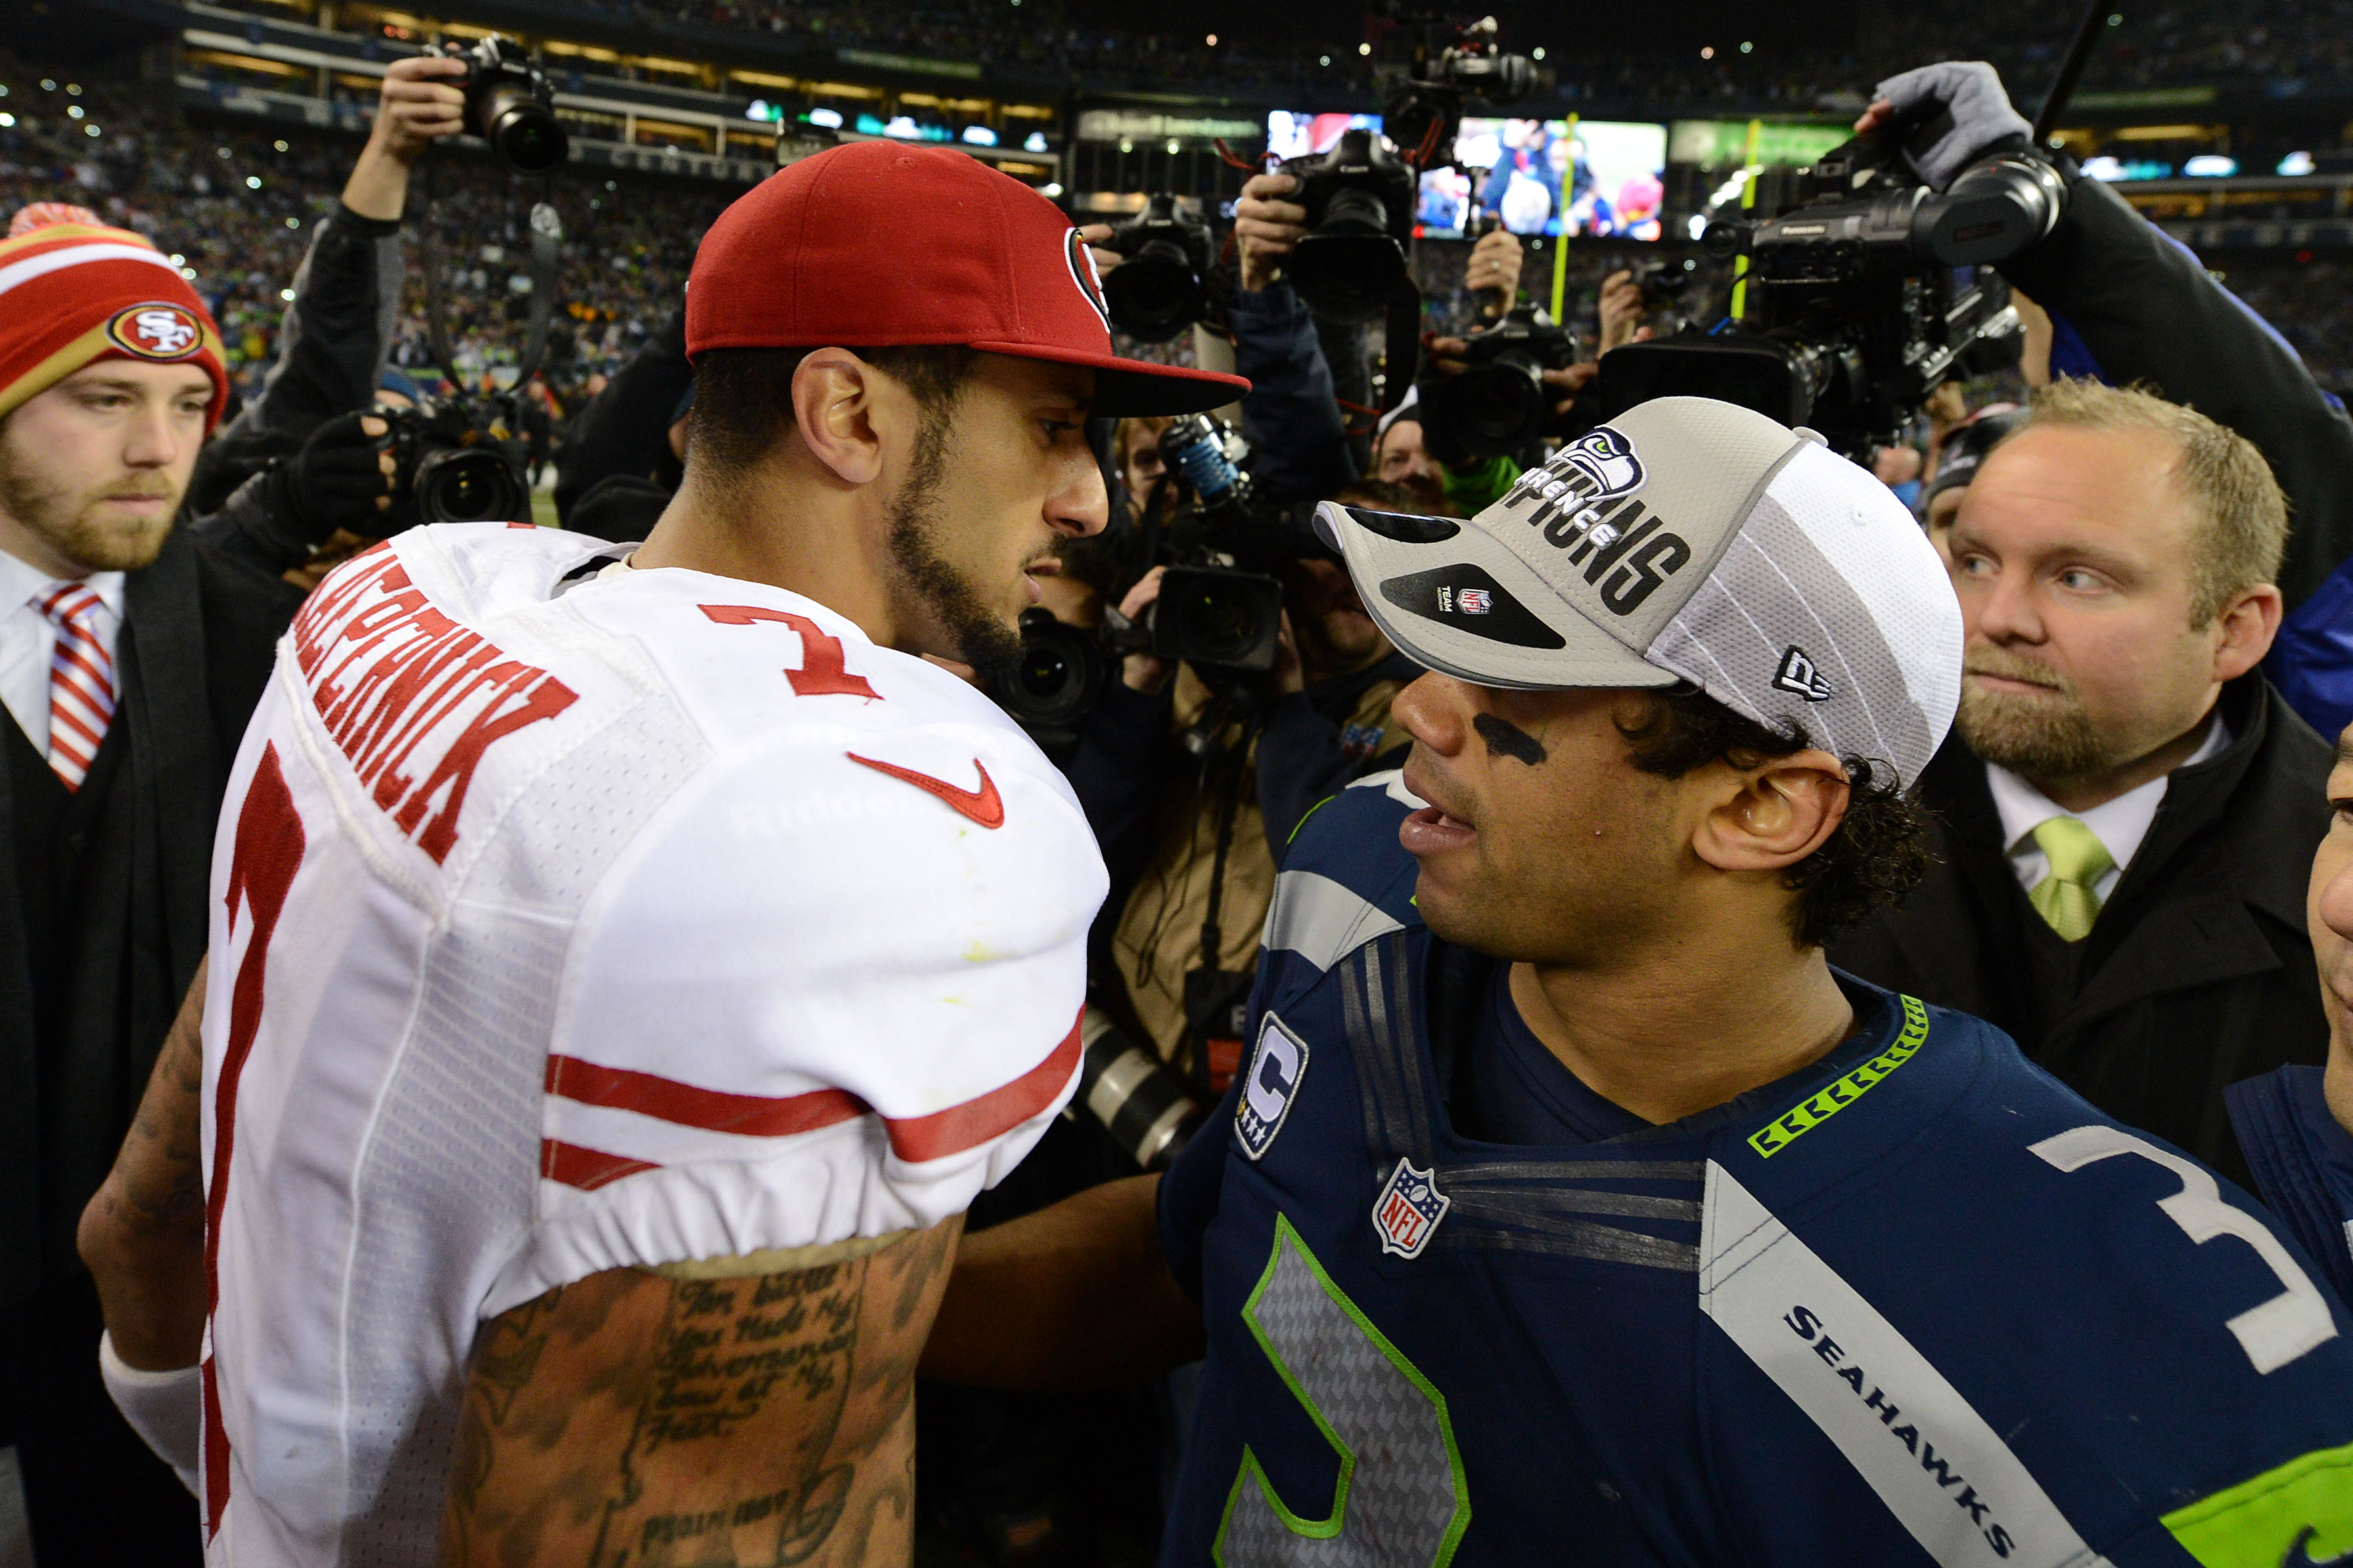 7686442-nfl-nfc-championship-san-francisco-49ers-at-seattle-seahawks